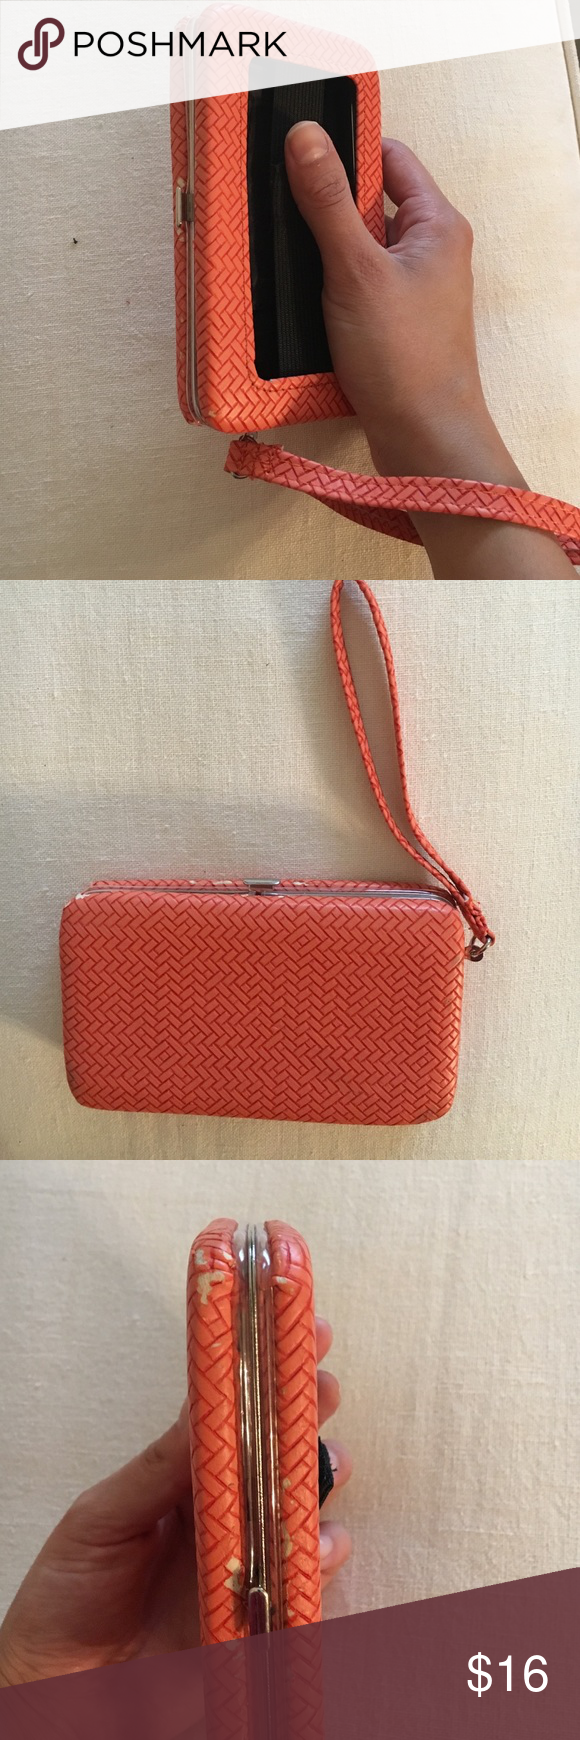 Orange Phone Wristlet Little orange wristlet perfect for the summer! Travel light with this versatile bag. can hold iPhone, Galaxy, etc. Phone slot dimensions: 3 in width, 5 in heigh, .75 in in width. 3 credit card slots, id slot. 1 cash/change slot with Velcro elastic to hold phone in place when opened. Opens and closes perfectly and can tuck in wrist strap. Little wear and tear on corners as shown but not too noticeable. Send your offers for this gem ❤️ Bags Clutches & Wristlets